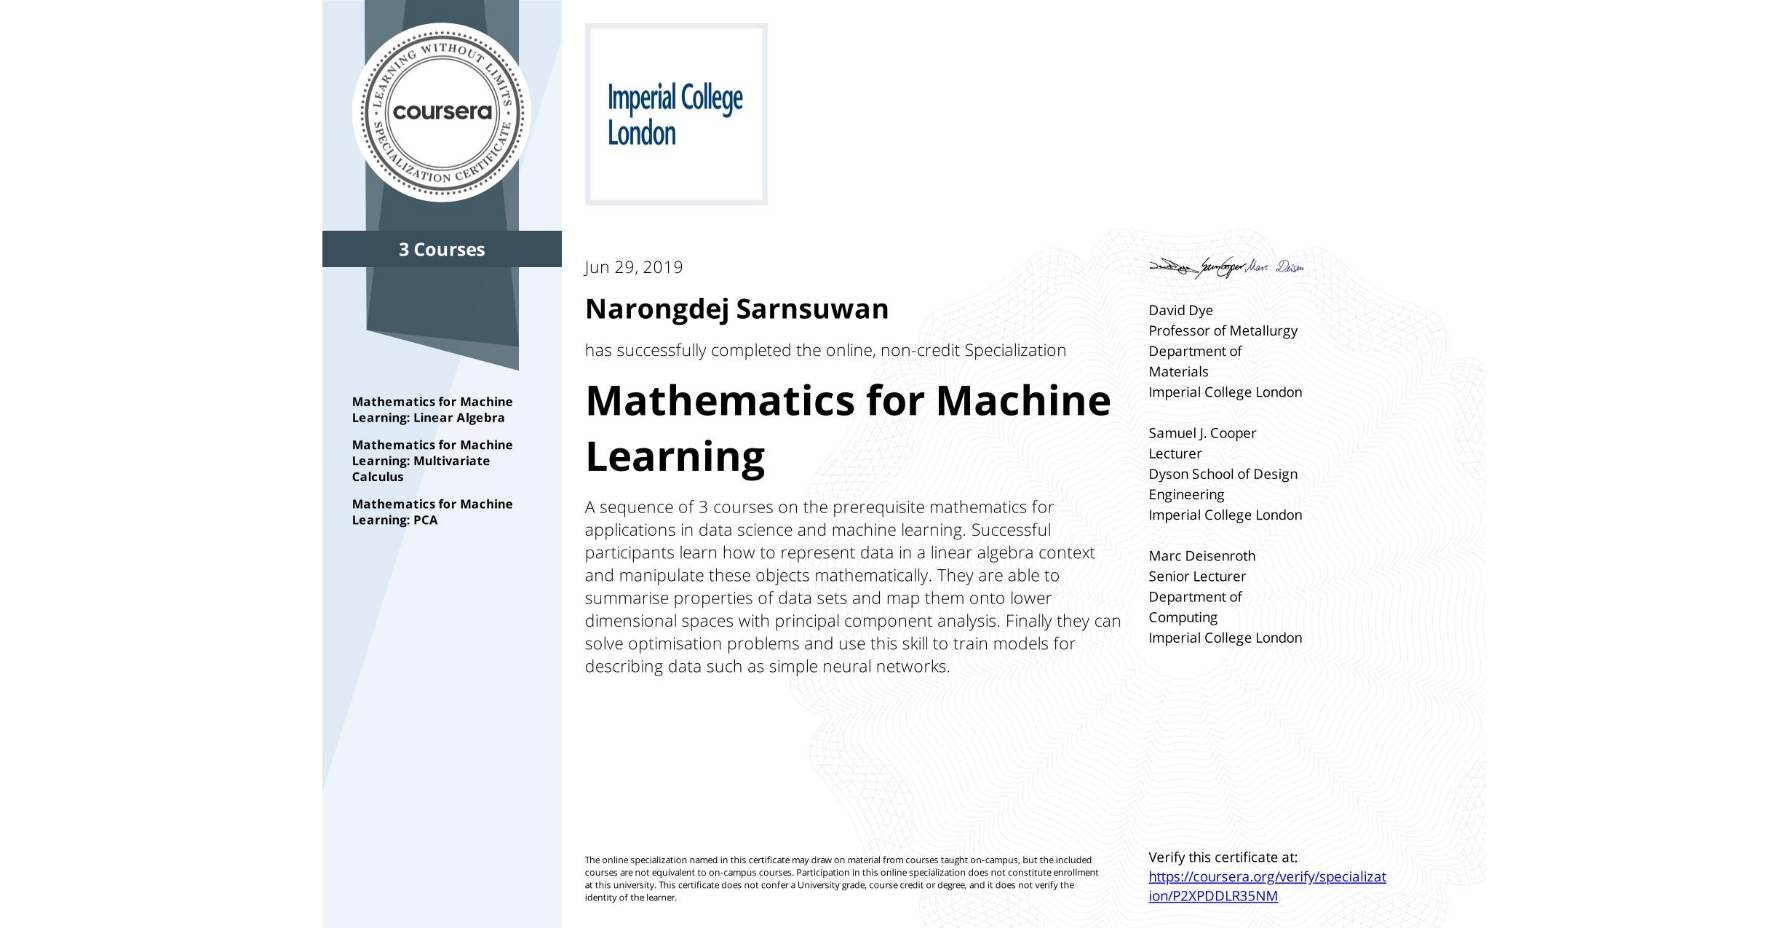 View certificate for Narongdej Sarnsuwan, Mathematics for Machine Learning, offered through Coursera. A sequence of 3 courses on the prerequisite mathematics for applications in data science and machine learning.   Successful participants learn how to represent data in a linear algebra context and manipulate these objects mathematically. They are able to summarise properties of data sets and map them onto lower dimensional spaces with principal component analysis. Finally they can solve optimisation problems and use this skill to train models for describing data such as simple neural networks.